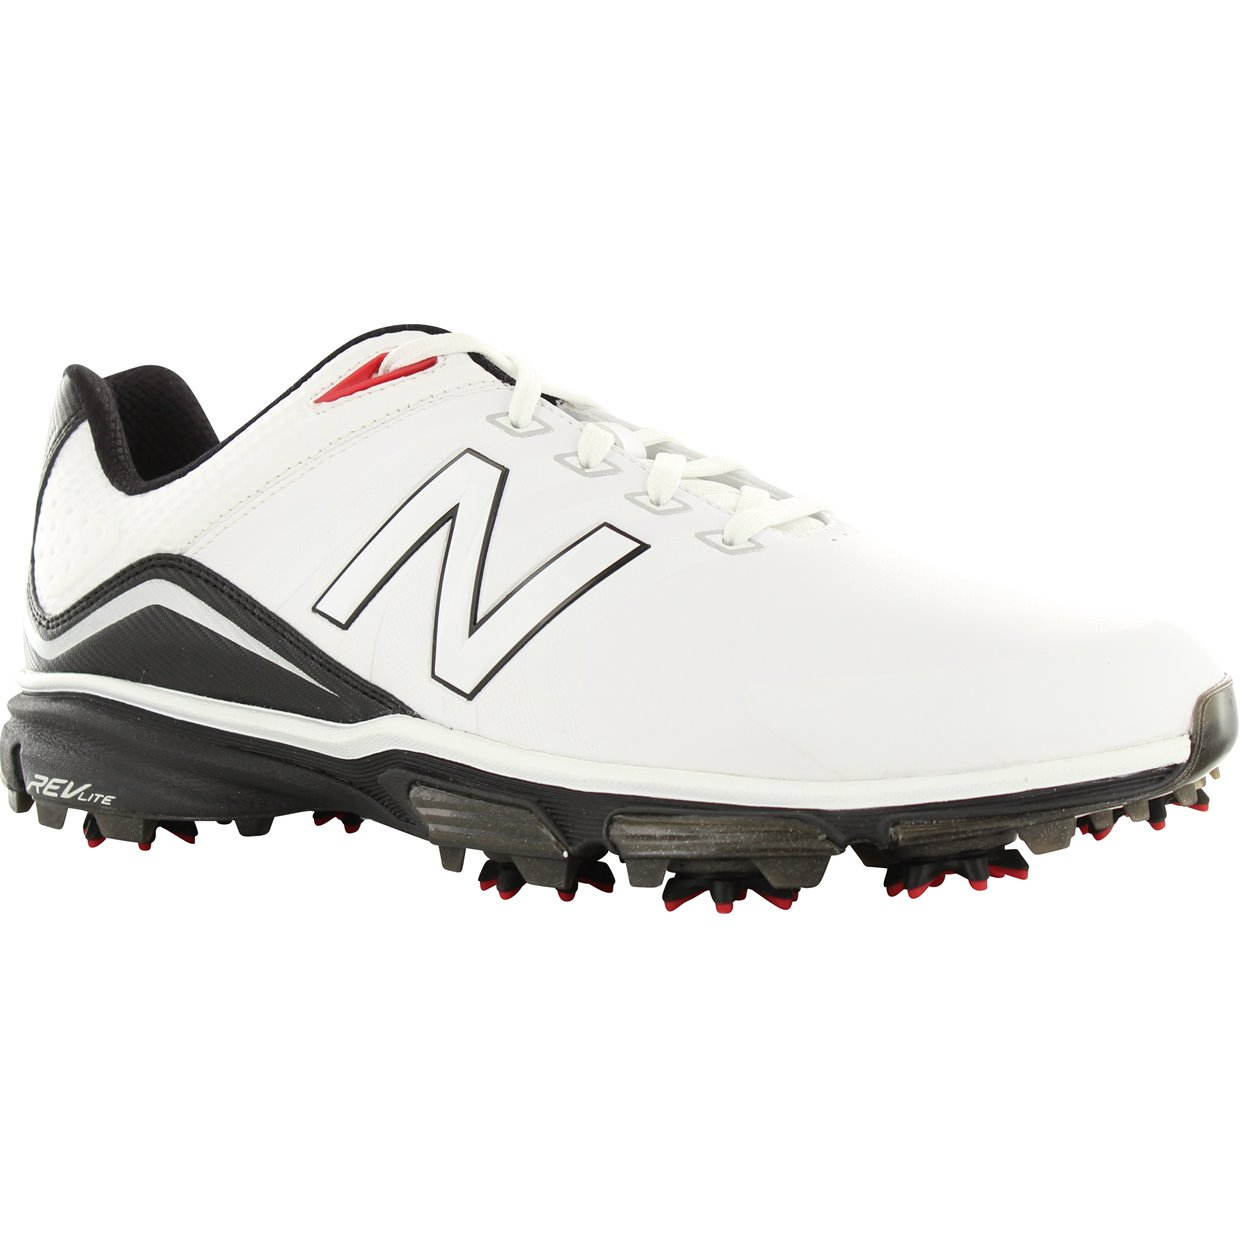 23a9bf98b4a73 New Balance NB Tour Golf Shoe Shoes · Alternate Product Image of Right Shoe  Side Angle ...